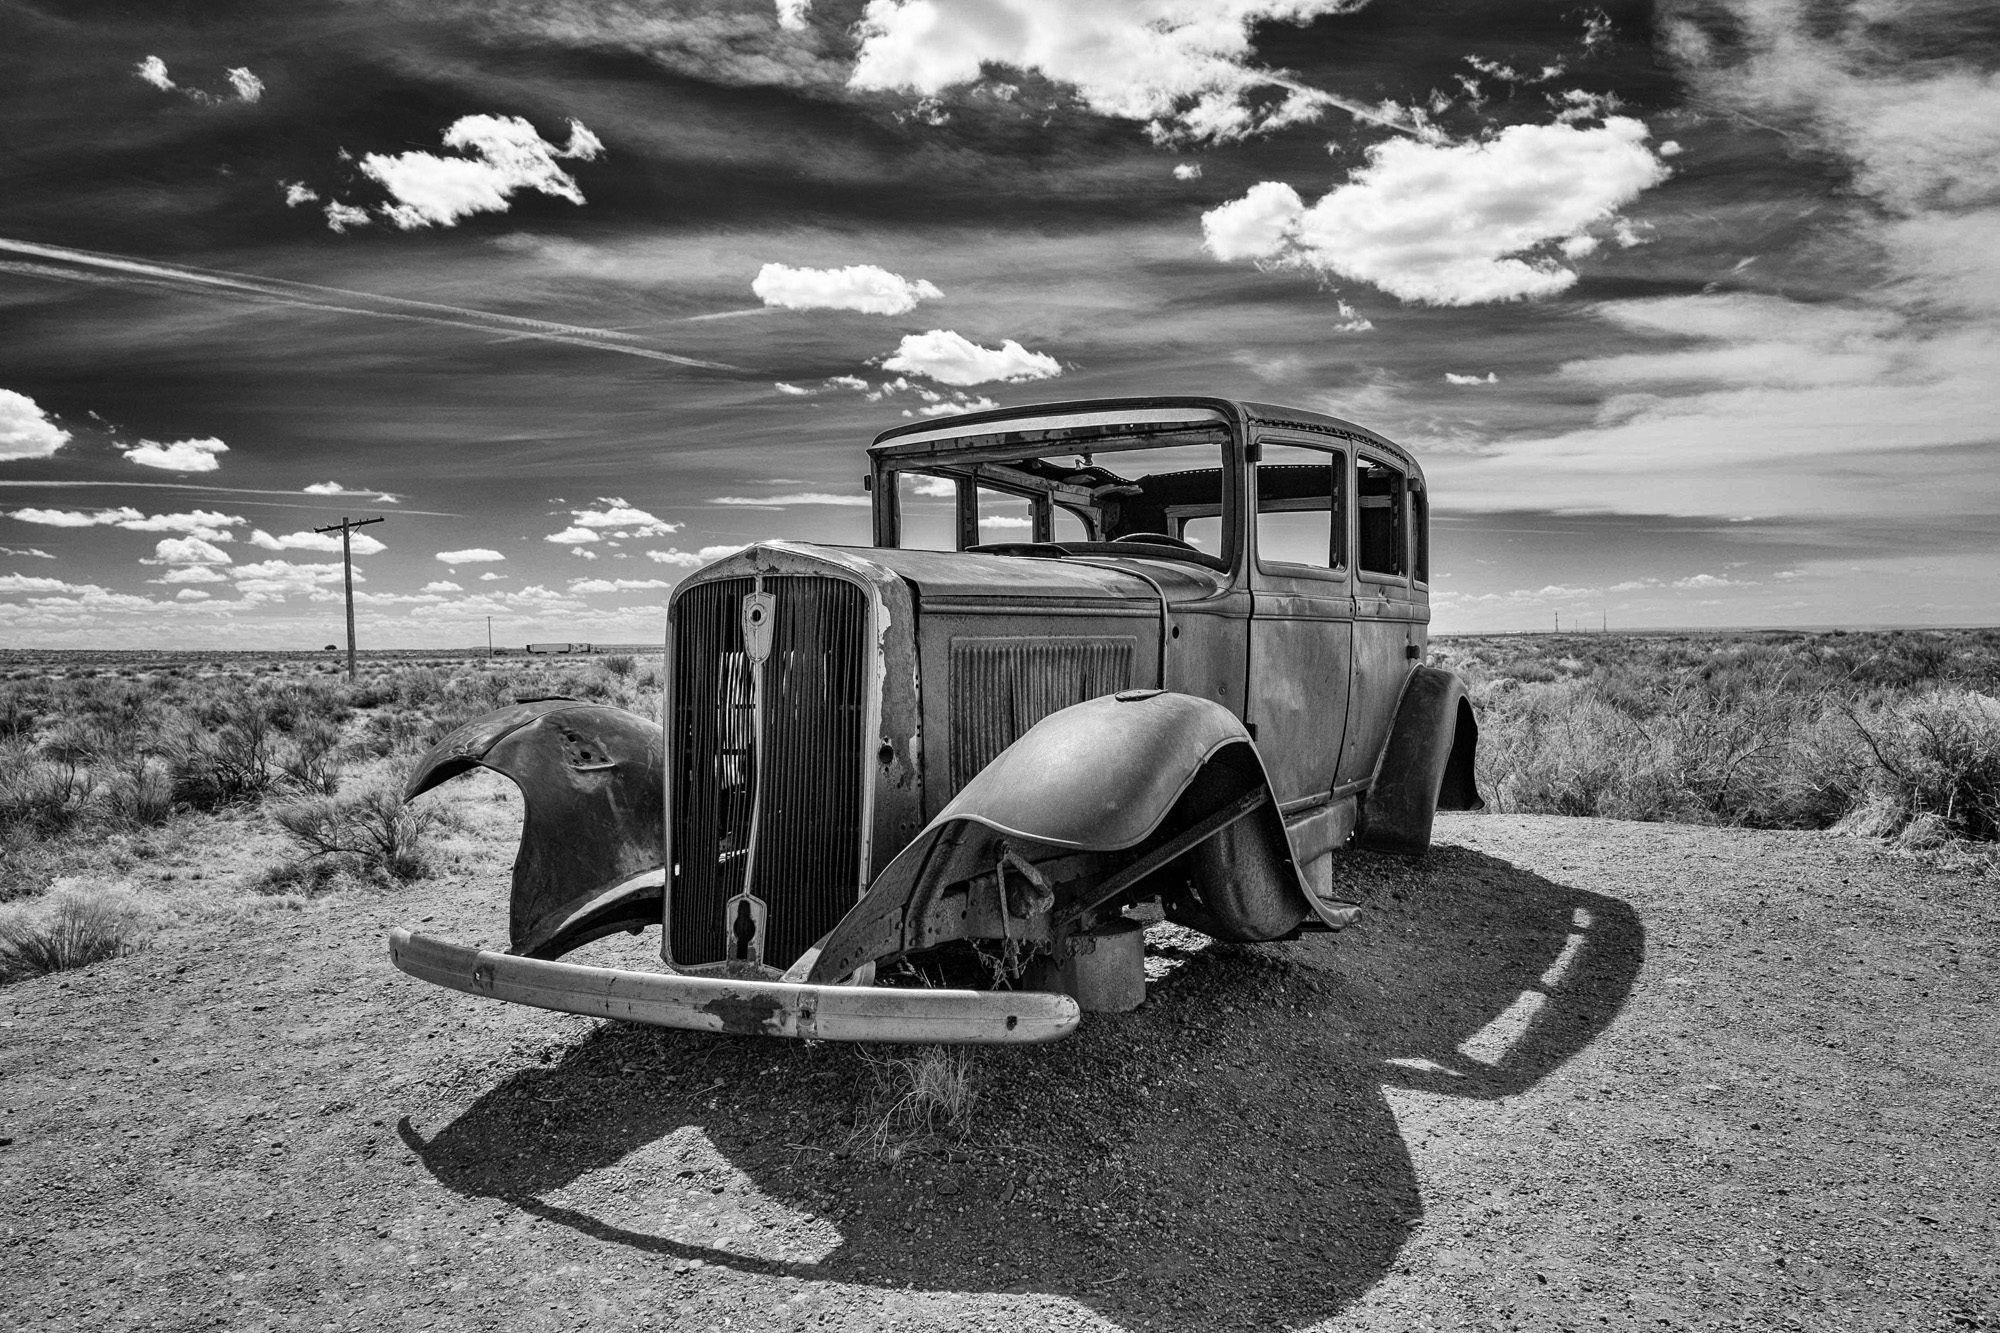 Speaking of old cars, this vintage shell is at the trailhead for the old road.